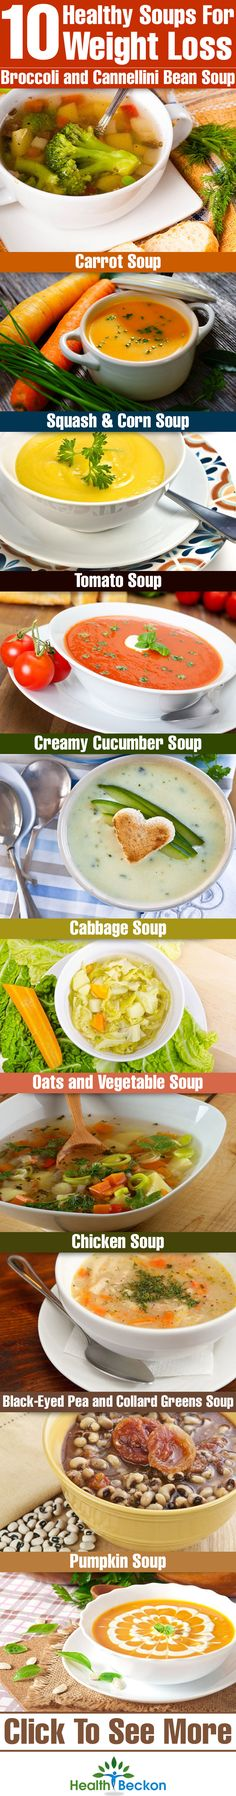 Top 10 Healthy Soups For Weight Loss #nutribulletrx